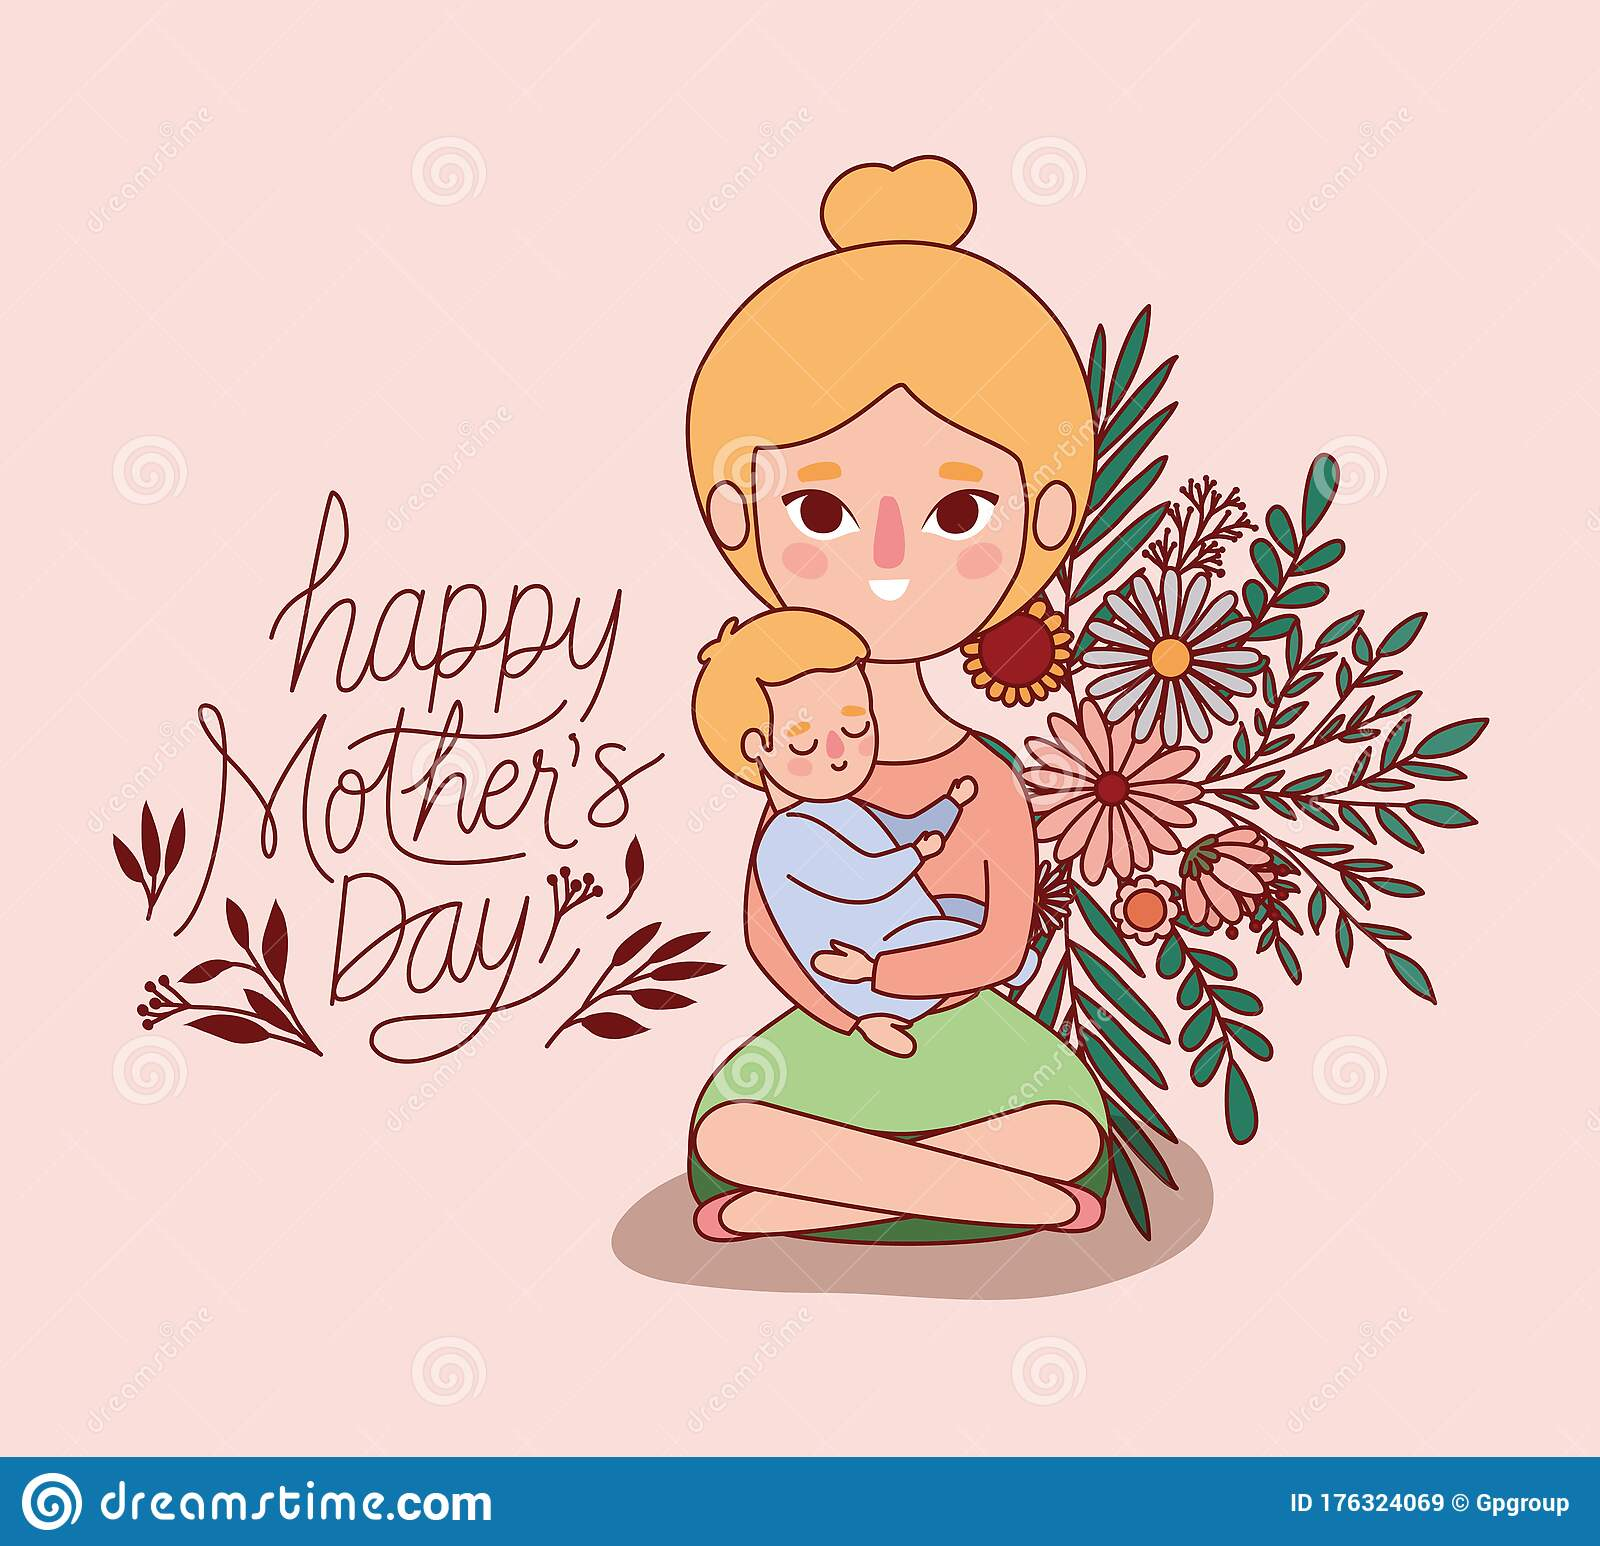 Mother And Baby Cartoon With Flowers And Leaves Vector Design Stock Vector Illustration Of Party Greeting 176324069